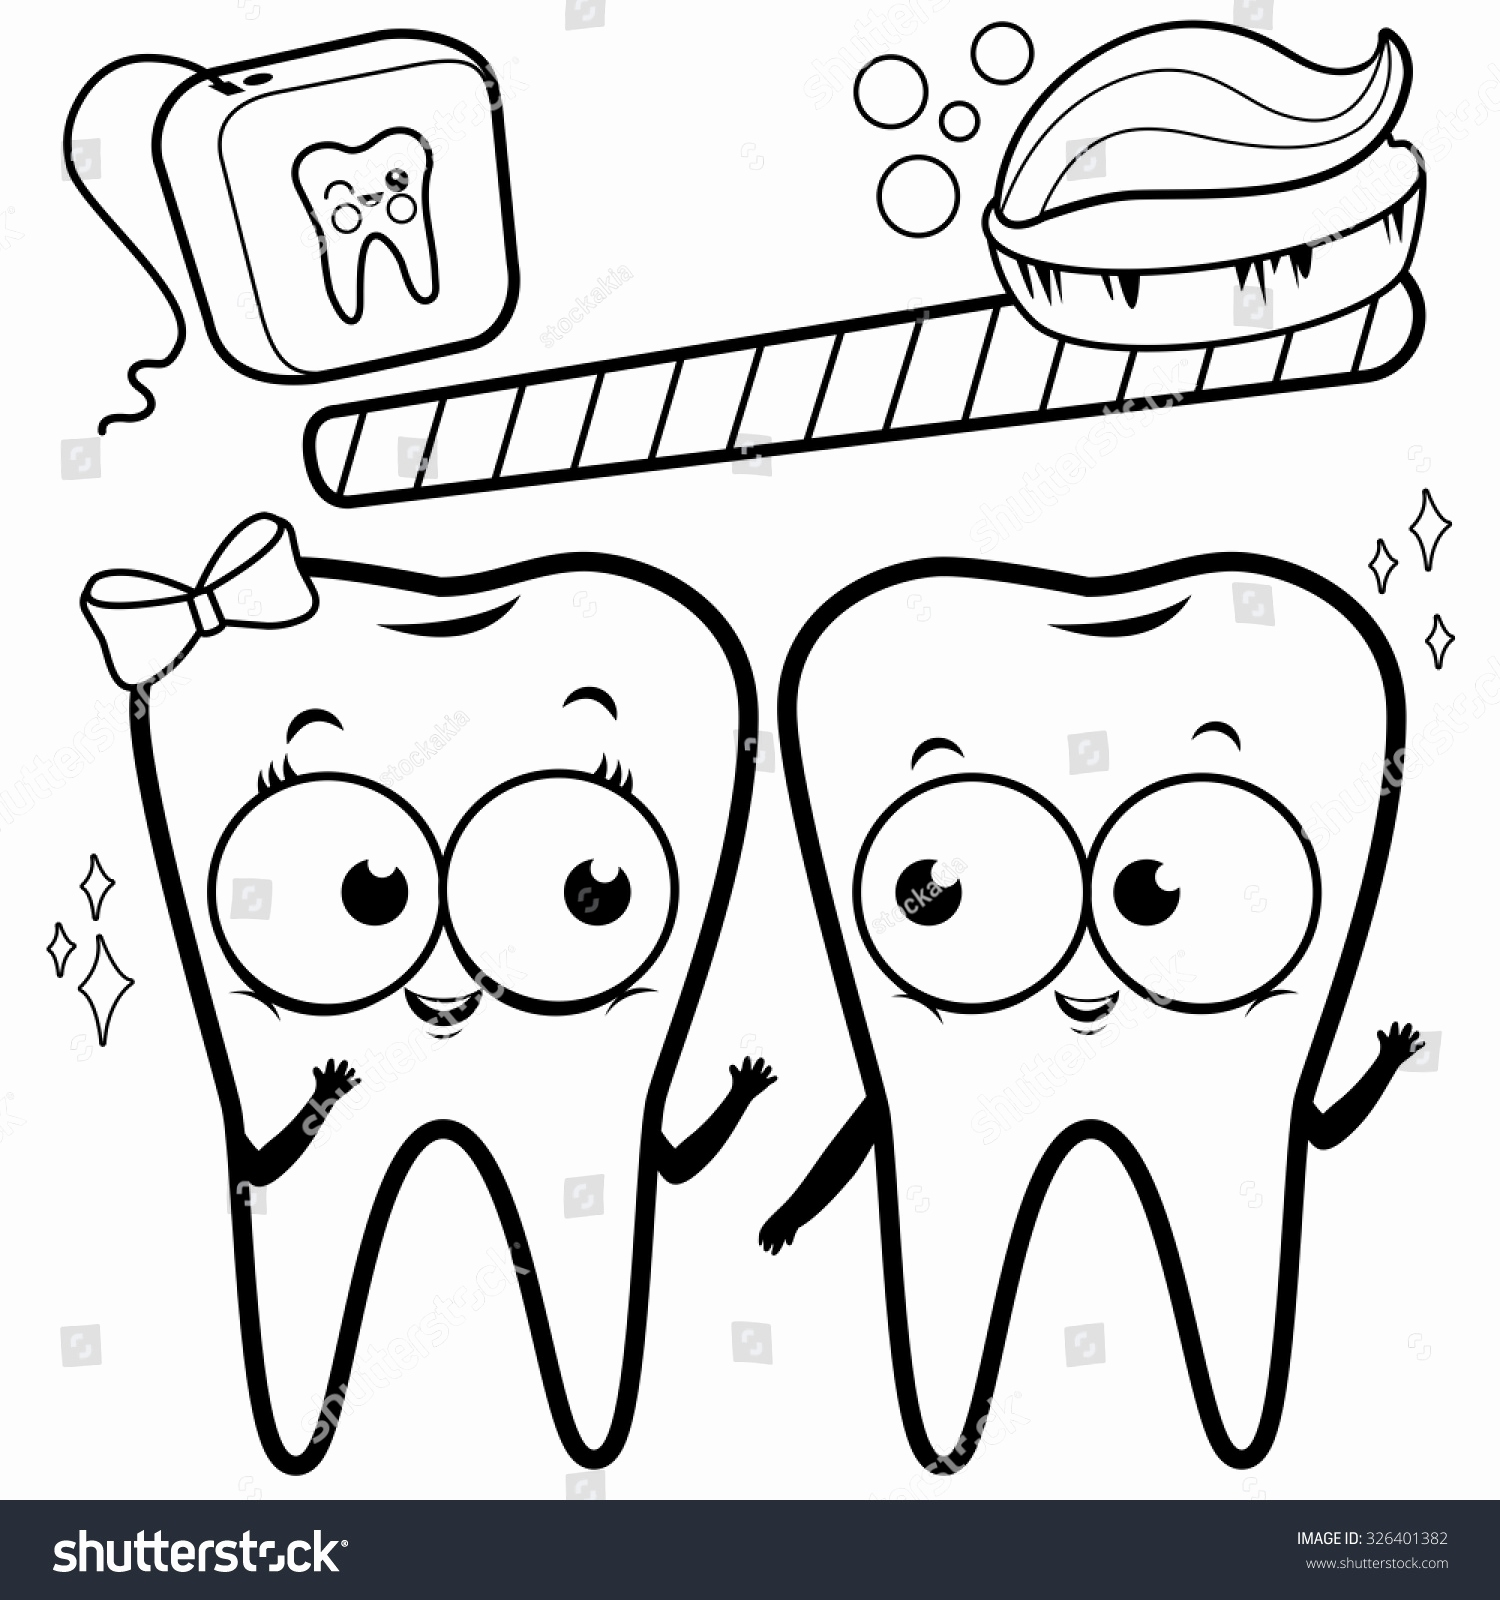 1500x1600 Dentist Coloring Pages Luxury Coloring Page Cartoon Teeth